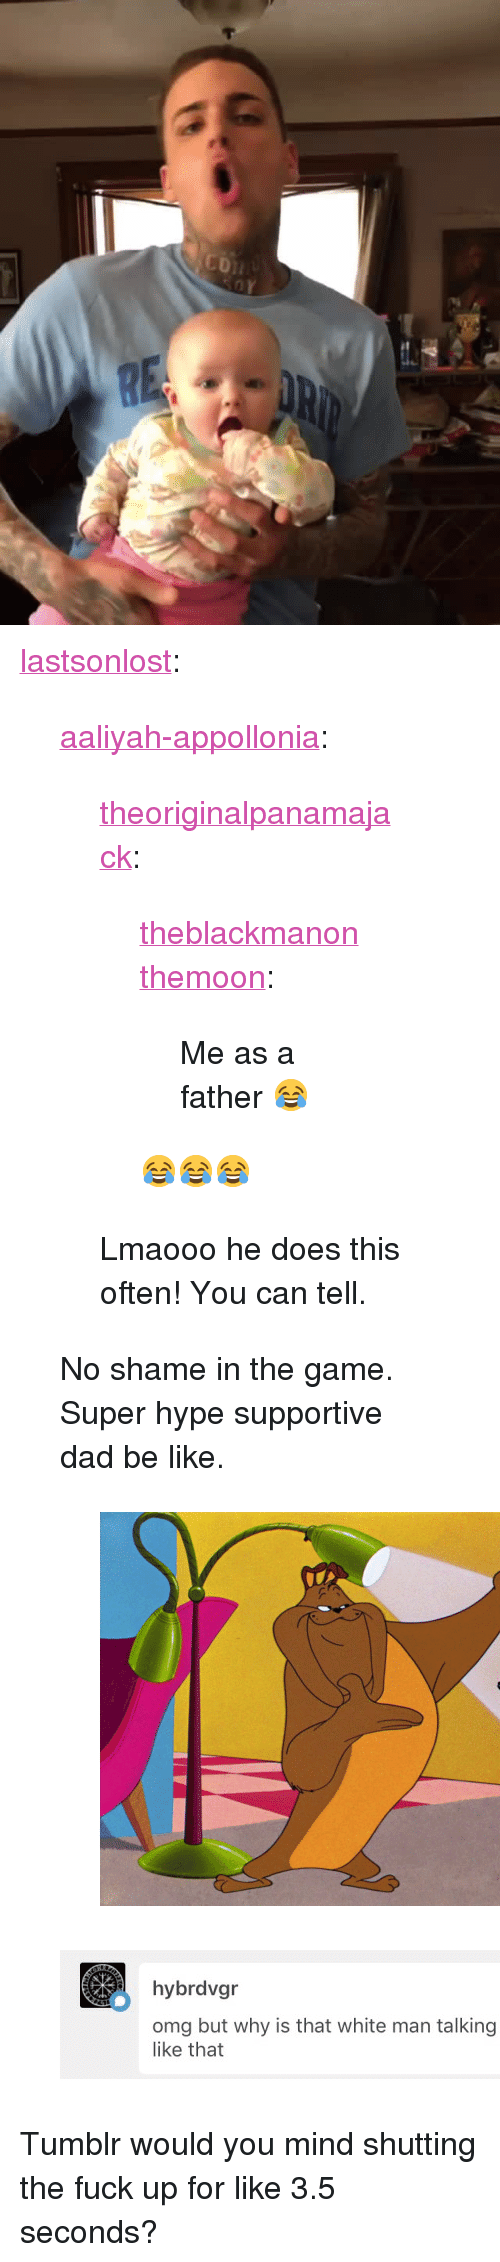 "Be Like, Dad, and Hype: <p><a href=""http://lastsonlost.tumblr.com/post/173561261572/aaliyah-appollonia-theoriginalpanamajack"" class=""tumblr_blog"">lastsonlost</a>:</p>  <blockquote><p><a href=""https://aaliyah-appollonia.tumblr.com/post/173325929430"" class=""tumblr_blog"">aaliyah-appollonia</a>:</p> <blockquote> <p><a href=""http://theoriginalpanamajack.tumblr.com/post/173325870607/theblackmanonthemoon-me-as-a-father"" class=""tumblr_blog"">theoriginalpanamajack</a>:</p>  <blockquote> <p><a href=""http://theblackmanonthemoon.tumblr.com/post/173325833338/me-as-a-father"" class=""tumblr_blog"">theblackmanonthemoon</a>:</p>  <blockquote><p>Me as a father 😂</p></blockquote>  <p>😂😂😂</p> </blockquote>  <p>Lmaooo he does this often! You can tell.</p> </blockquote> <p>No shame in the game. Super hype supportive dad be like.</p><figure class=""tmblr-full"" data-orig-height=""1080"" data-orig-width=""1479""><img src=""https://78.media.tumblr.com/4145362697856e0fea880046534cae16/tumblr_inline_p86ifgB3aA1sp5650_540.jpg"" data-orig-height=""1080"" data-orig-width=""1479""/></figure></blockquote>  <figure class=""tmblr-full"" data-orig-height=""194"" data-orig-width=""750""><img src=""https://78.media.tumblr.com/4d4f7cb7fb762f2a00dc8826867da7aa/tumblr_inline_p86pc8Y21o1rw09tq_500.jpg"" data-orig-height=""194"" data-orig-width=""750""/></figure><p>Tumblr would you mind shutting the fuck up for like 3.5 seconds?</p>"